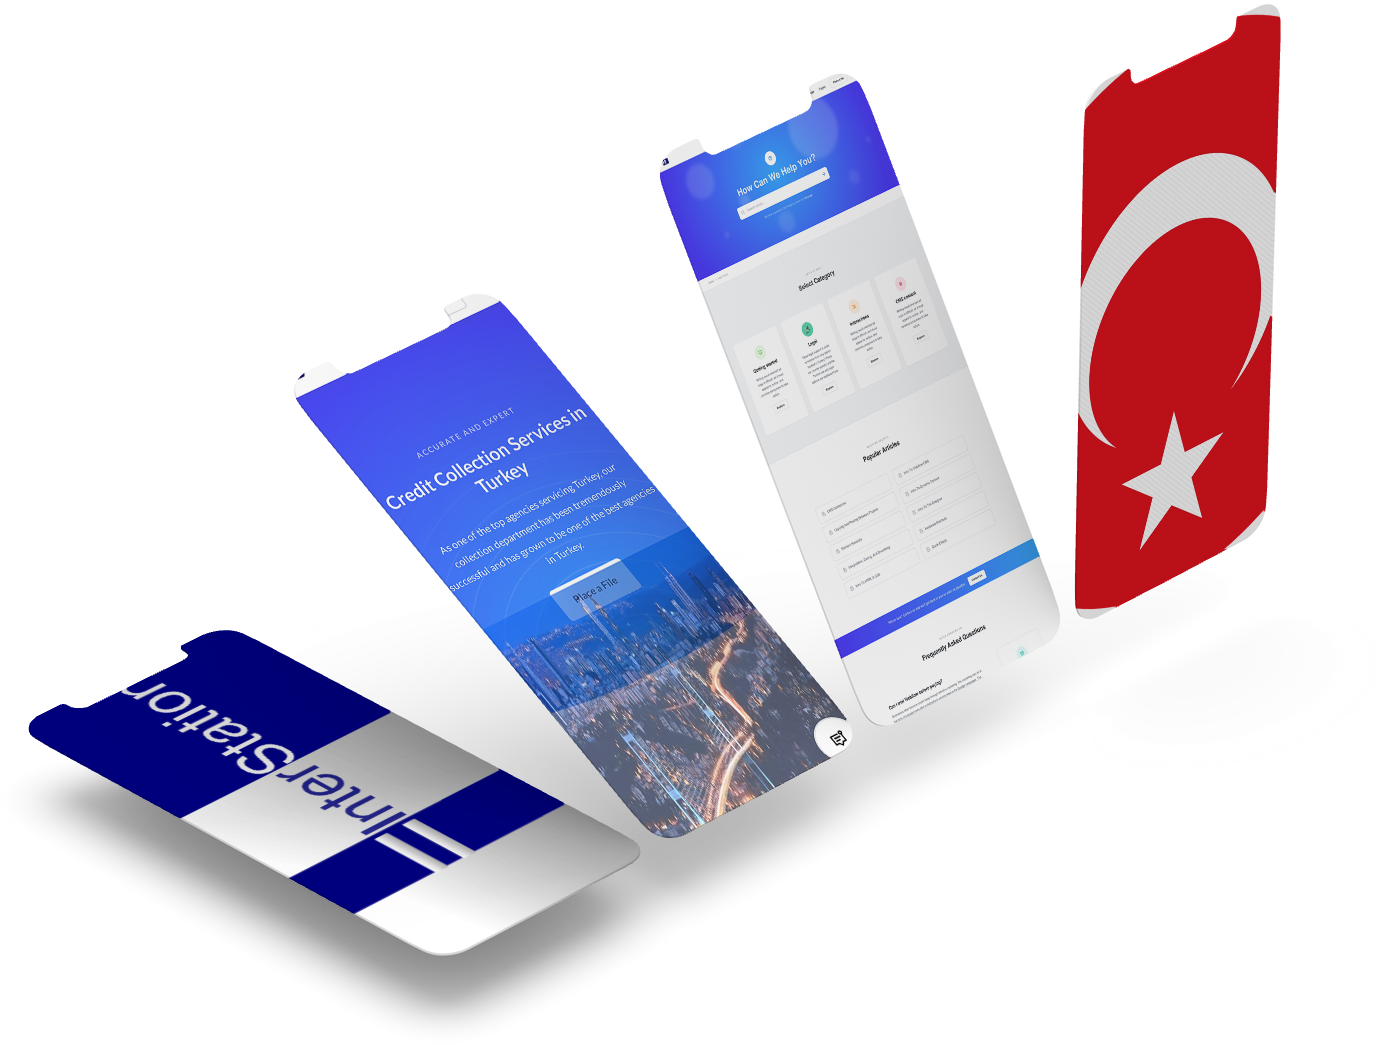 place a file for debt collection in Turkey